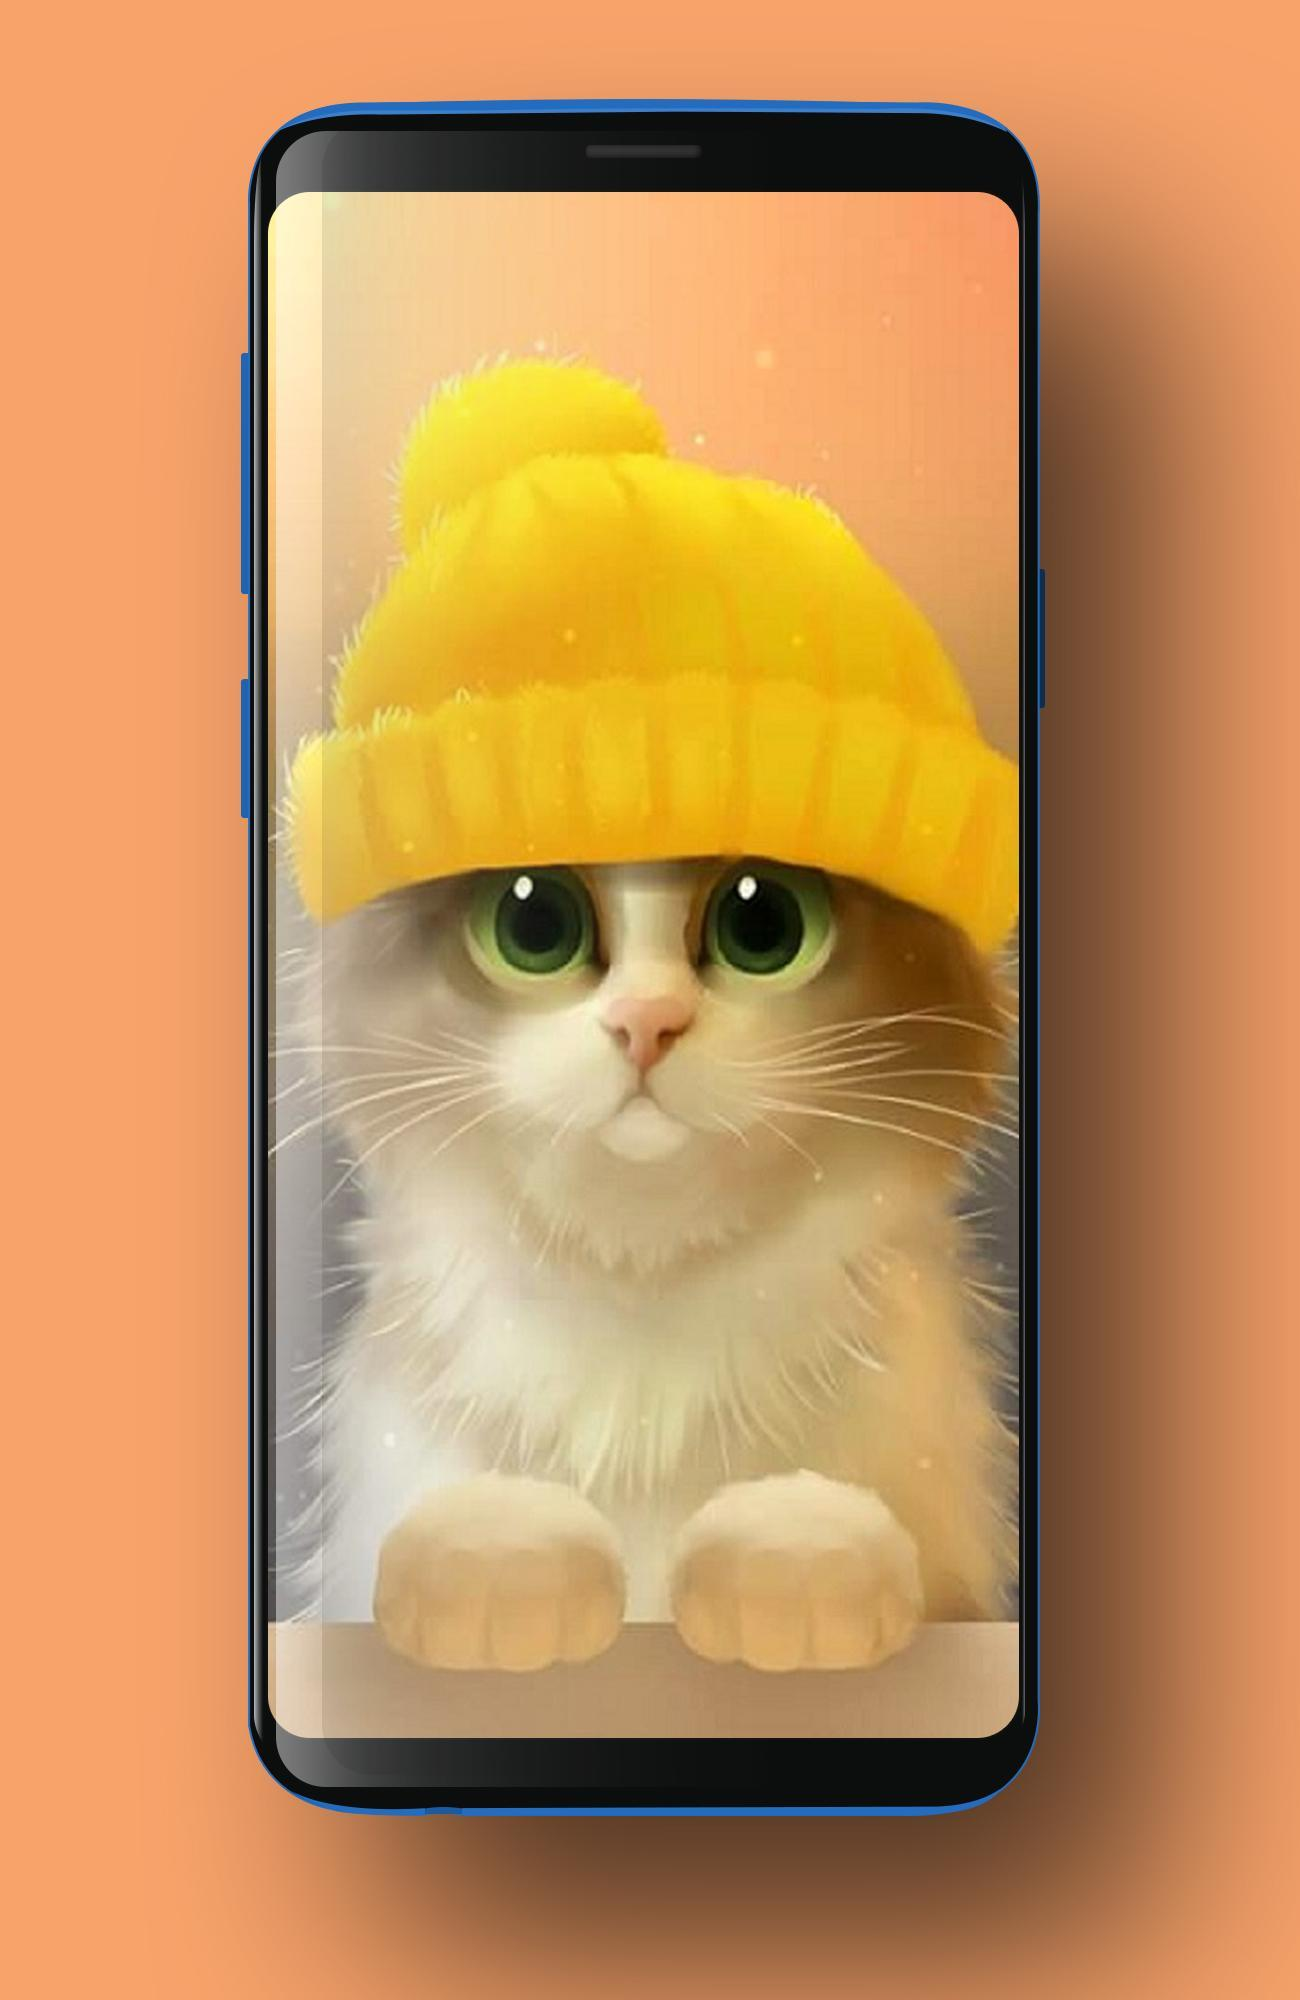 Kawaii Cute Animal Wallpapers Hd For Android Apk Download